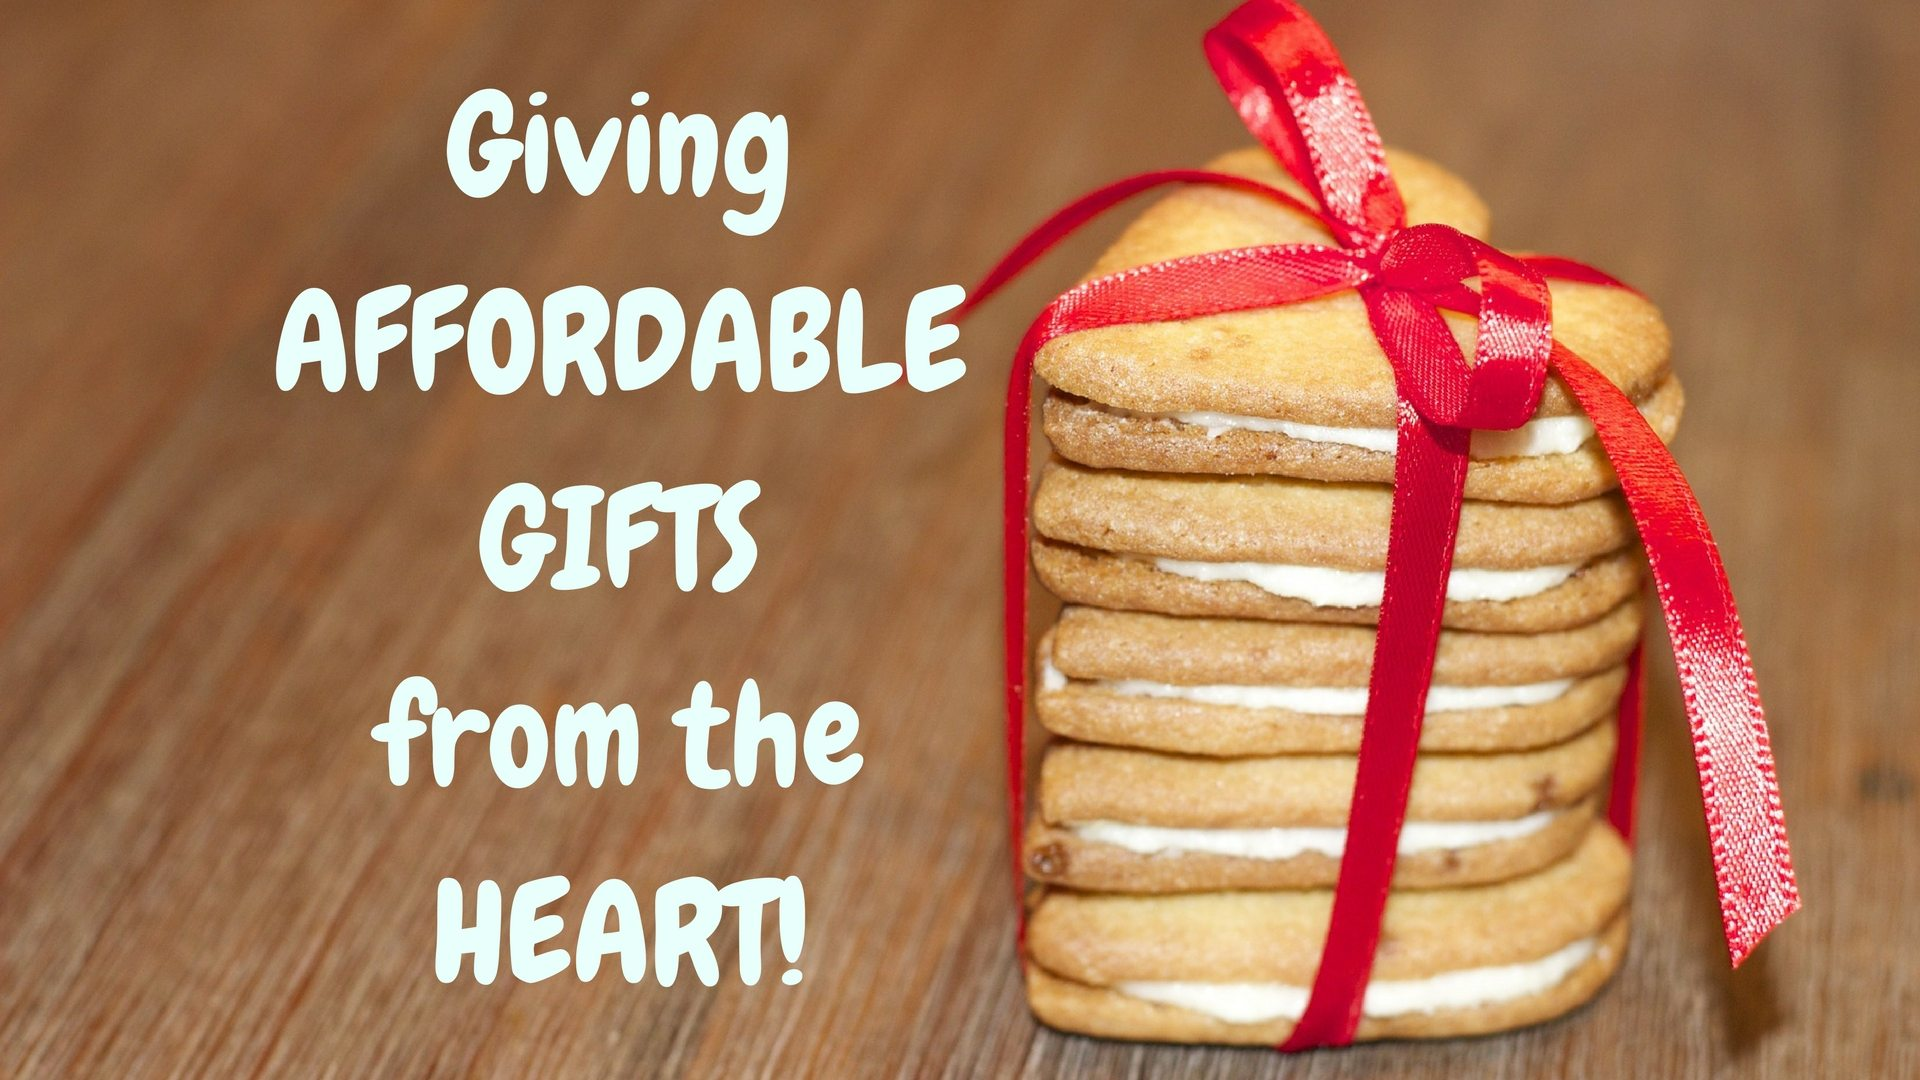 Giving Affordable Gifts - Pixabay - Canva